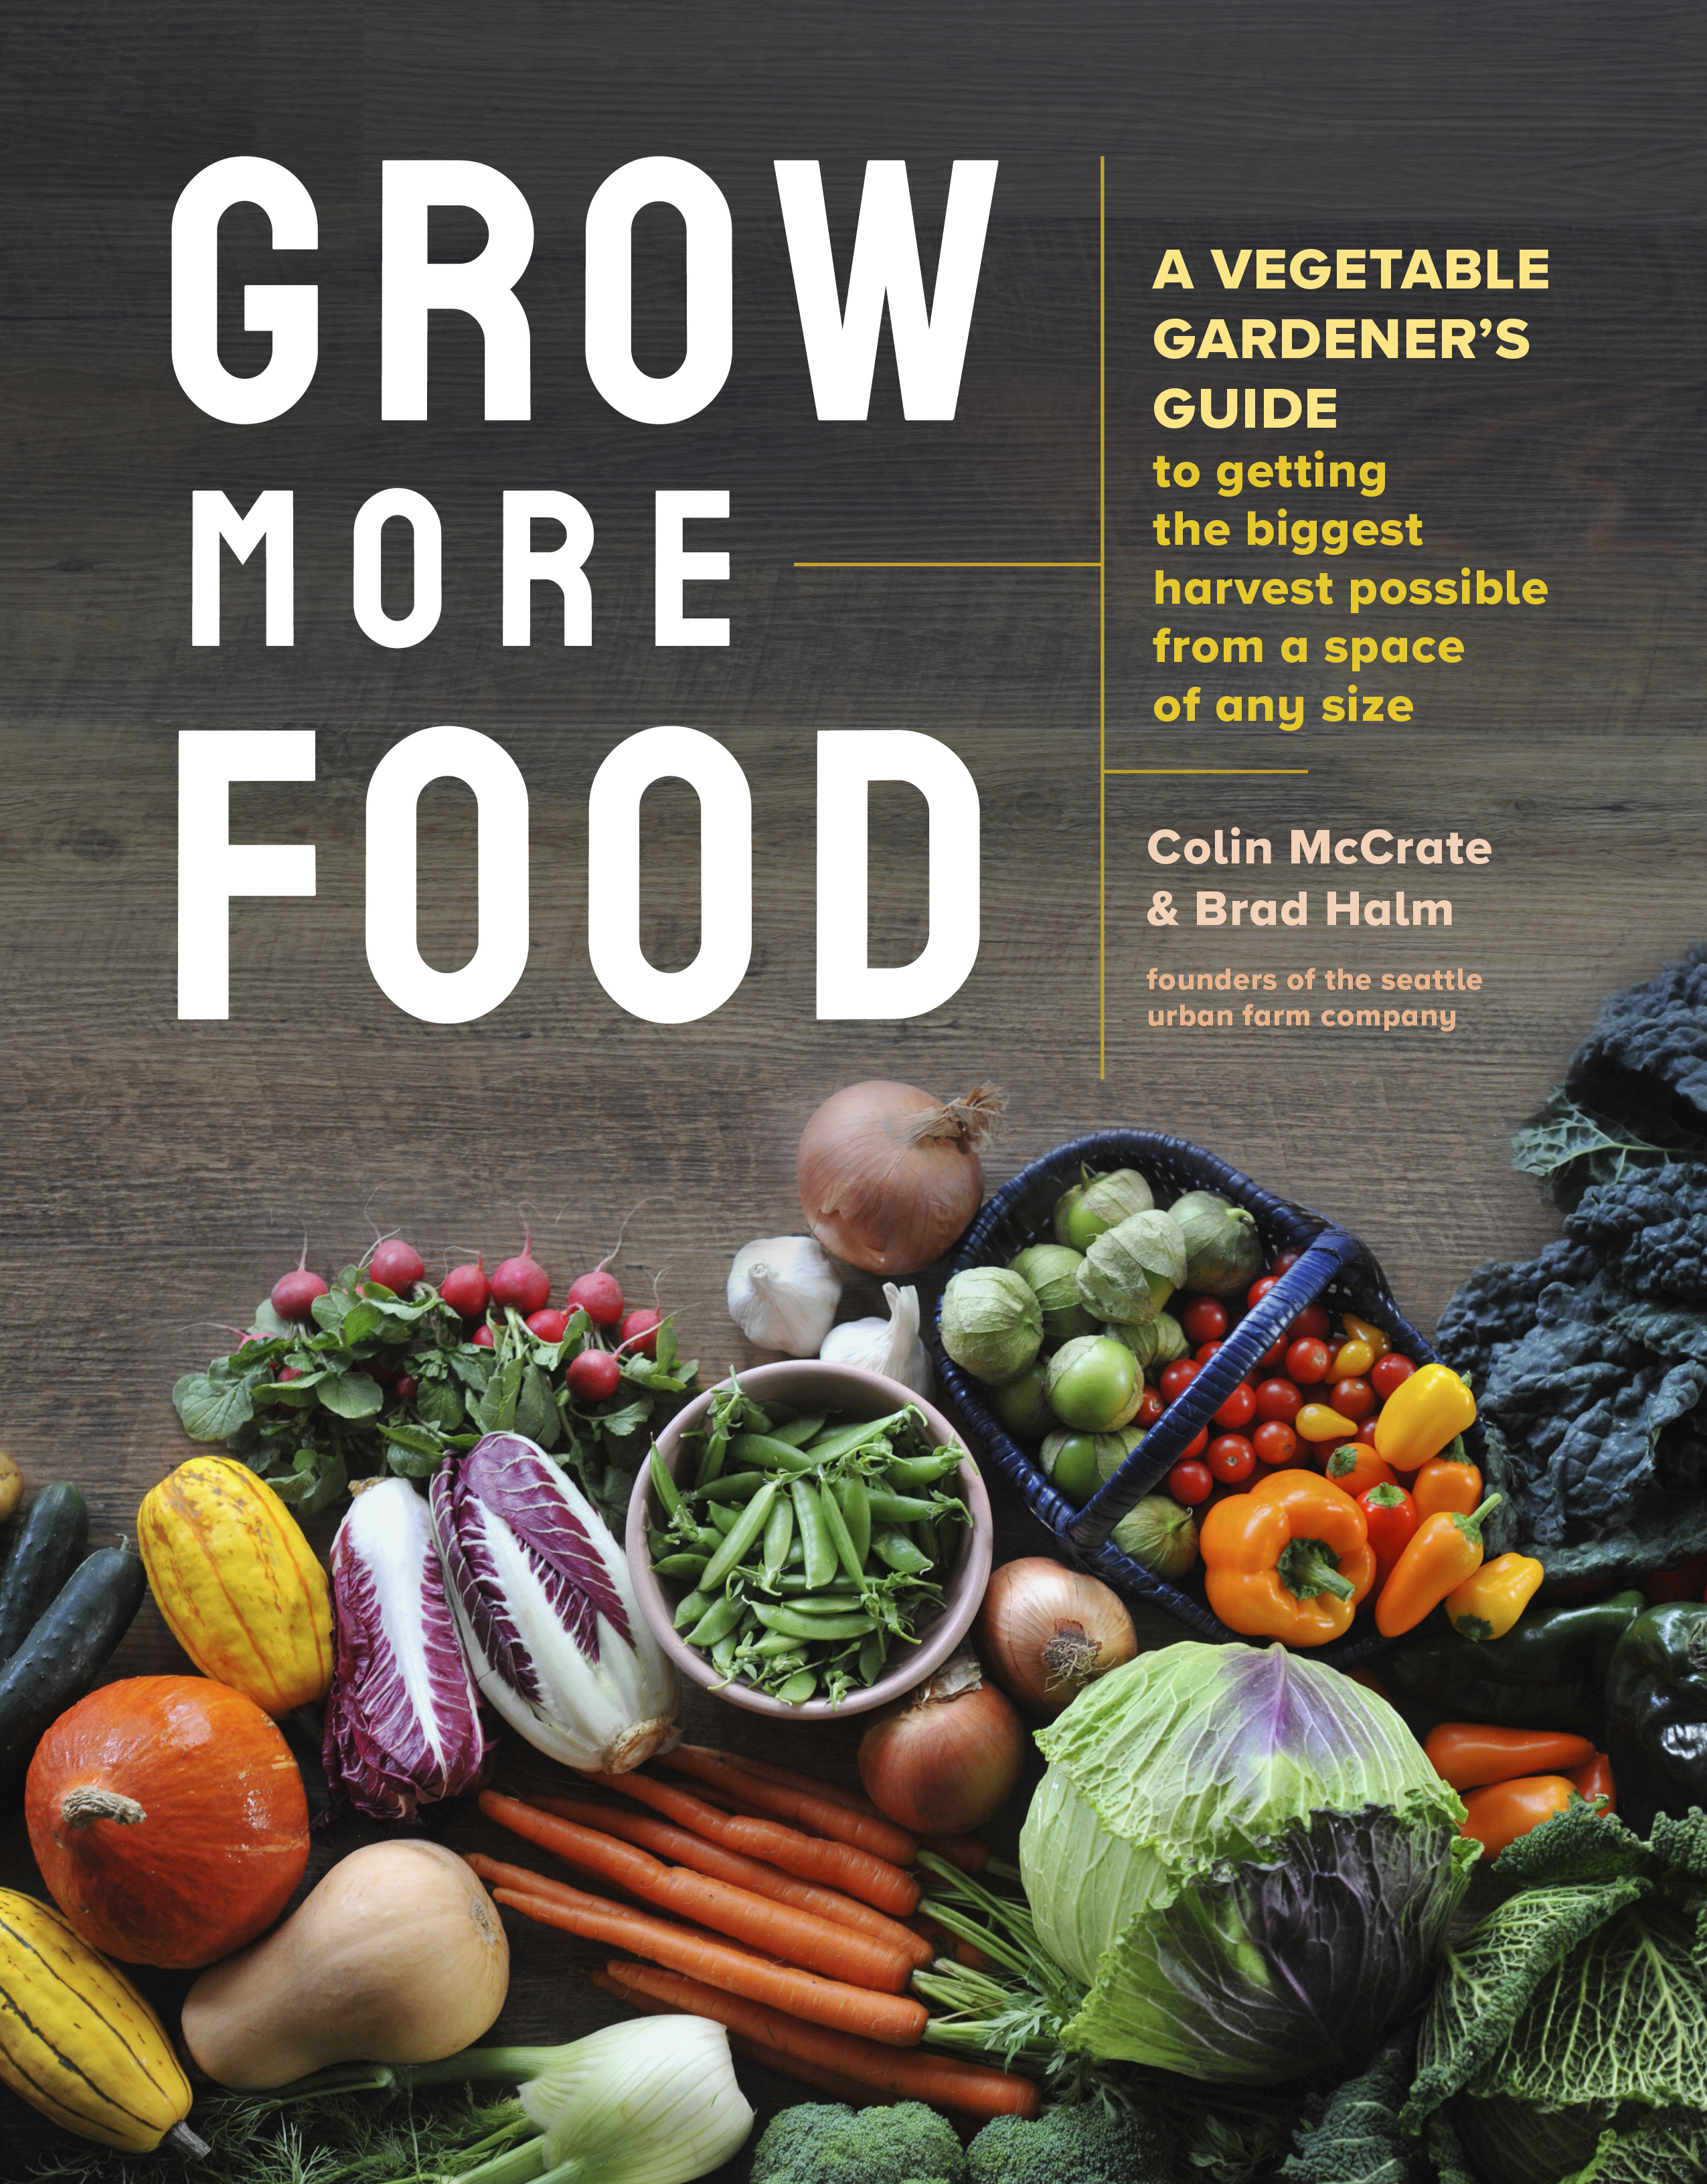 Grow More Food A Vegetable Gardener's Guide to Getting the Biggest Harvest Possible from a Space of Any Size - Colin McCrate